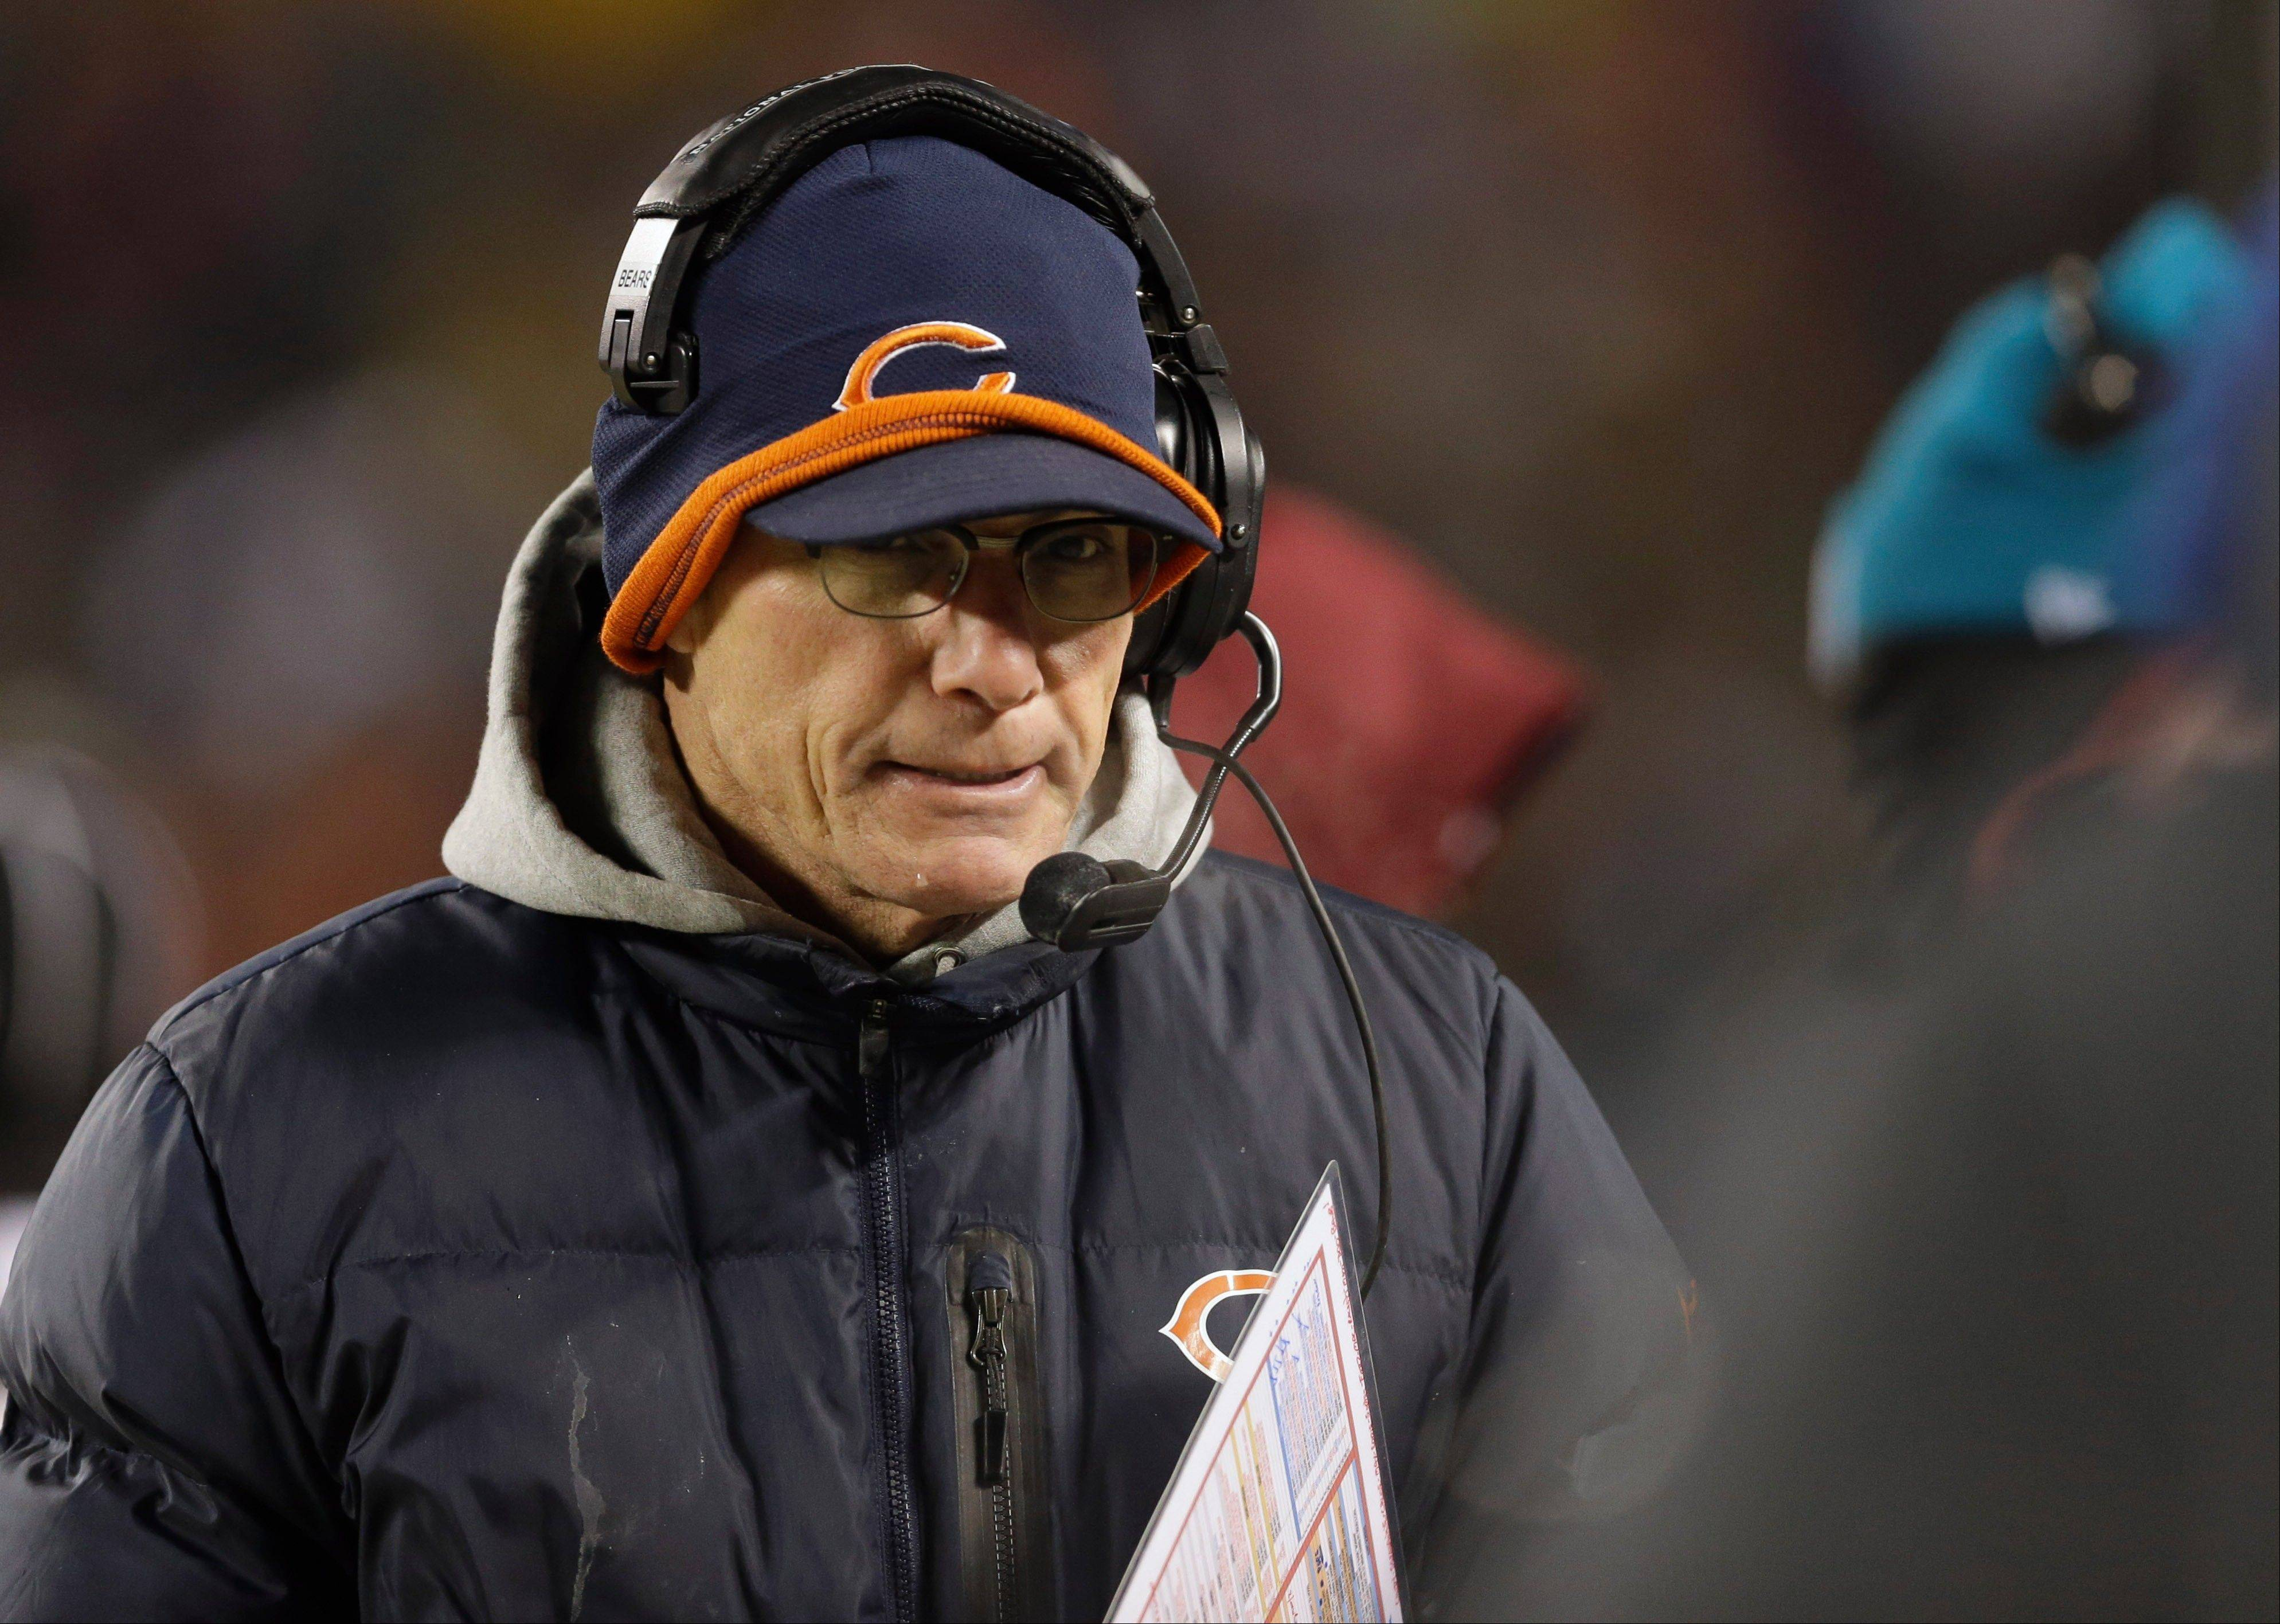 Bears head coach Marc Trestman said he was proud of the way the Bears went back to tornado-ravaged Washington, Ill., last week after a tough loss to the Vikings.